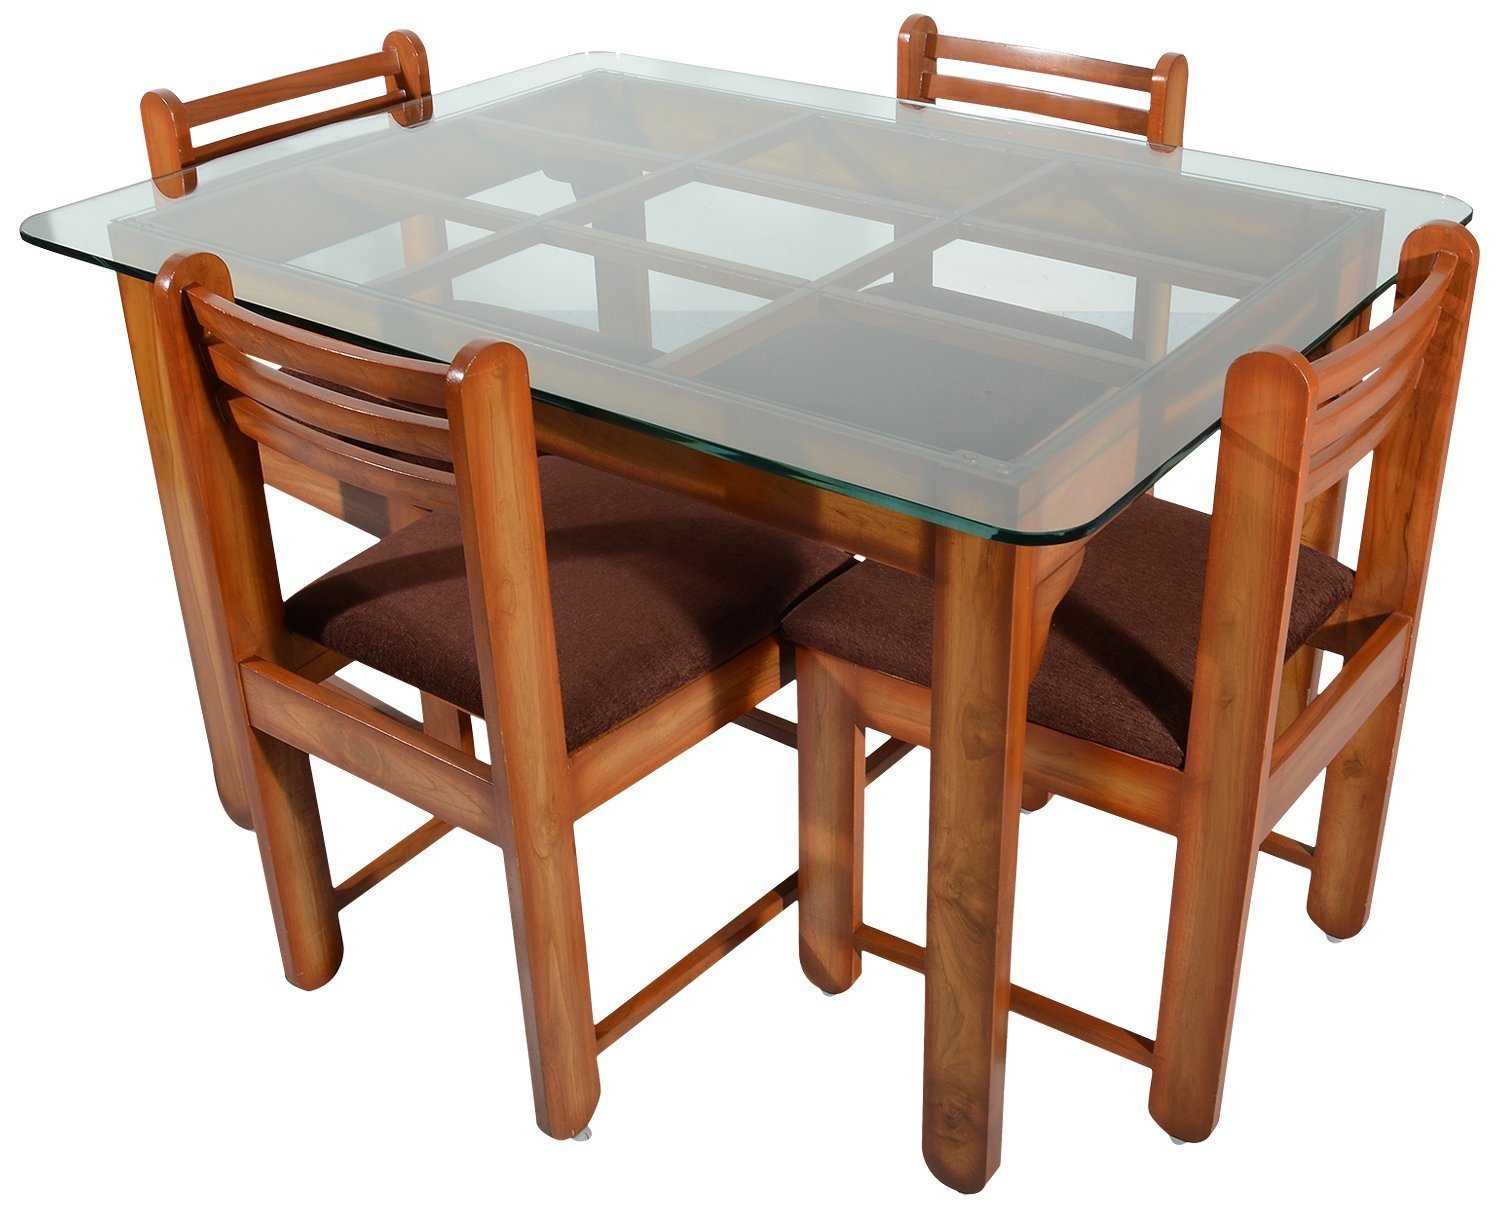 Rawat D14DC14 Four Seater Dining Table (Muticolour)